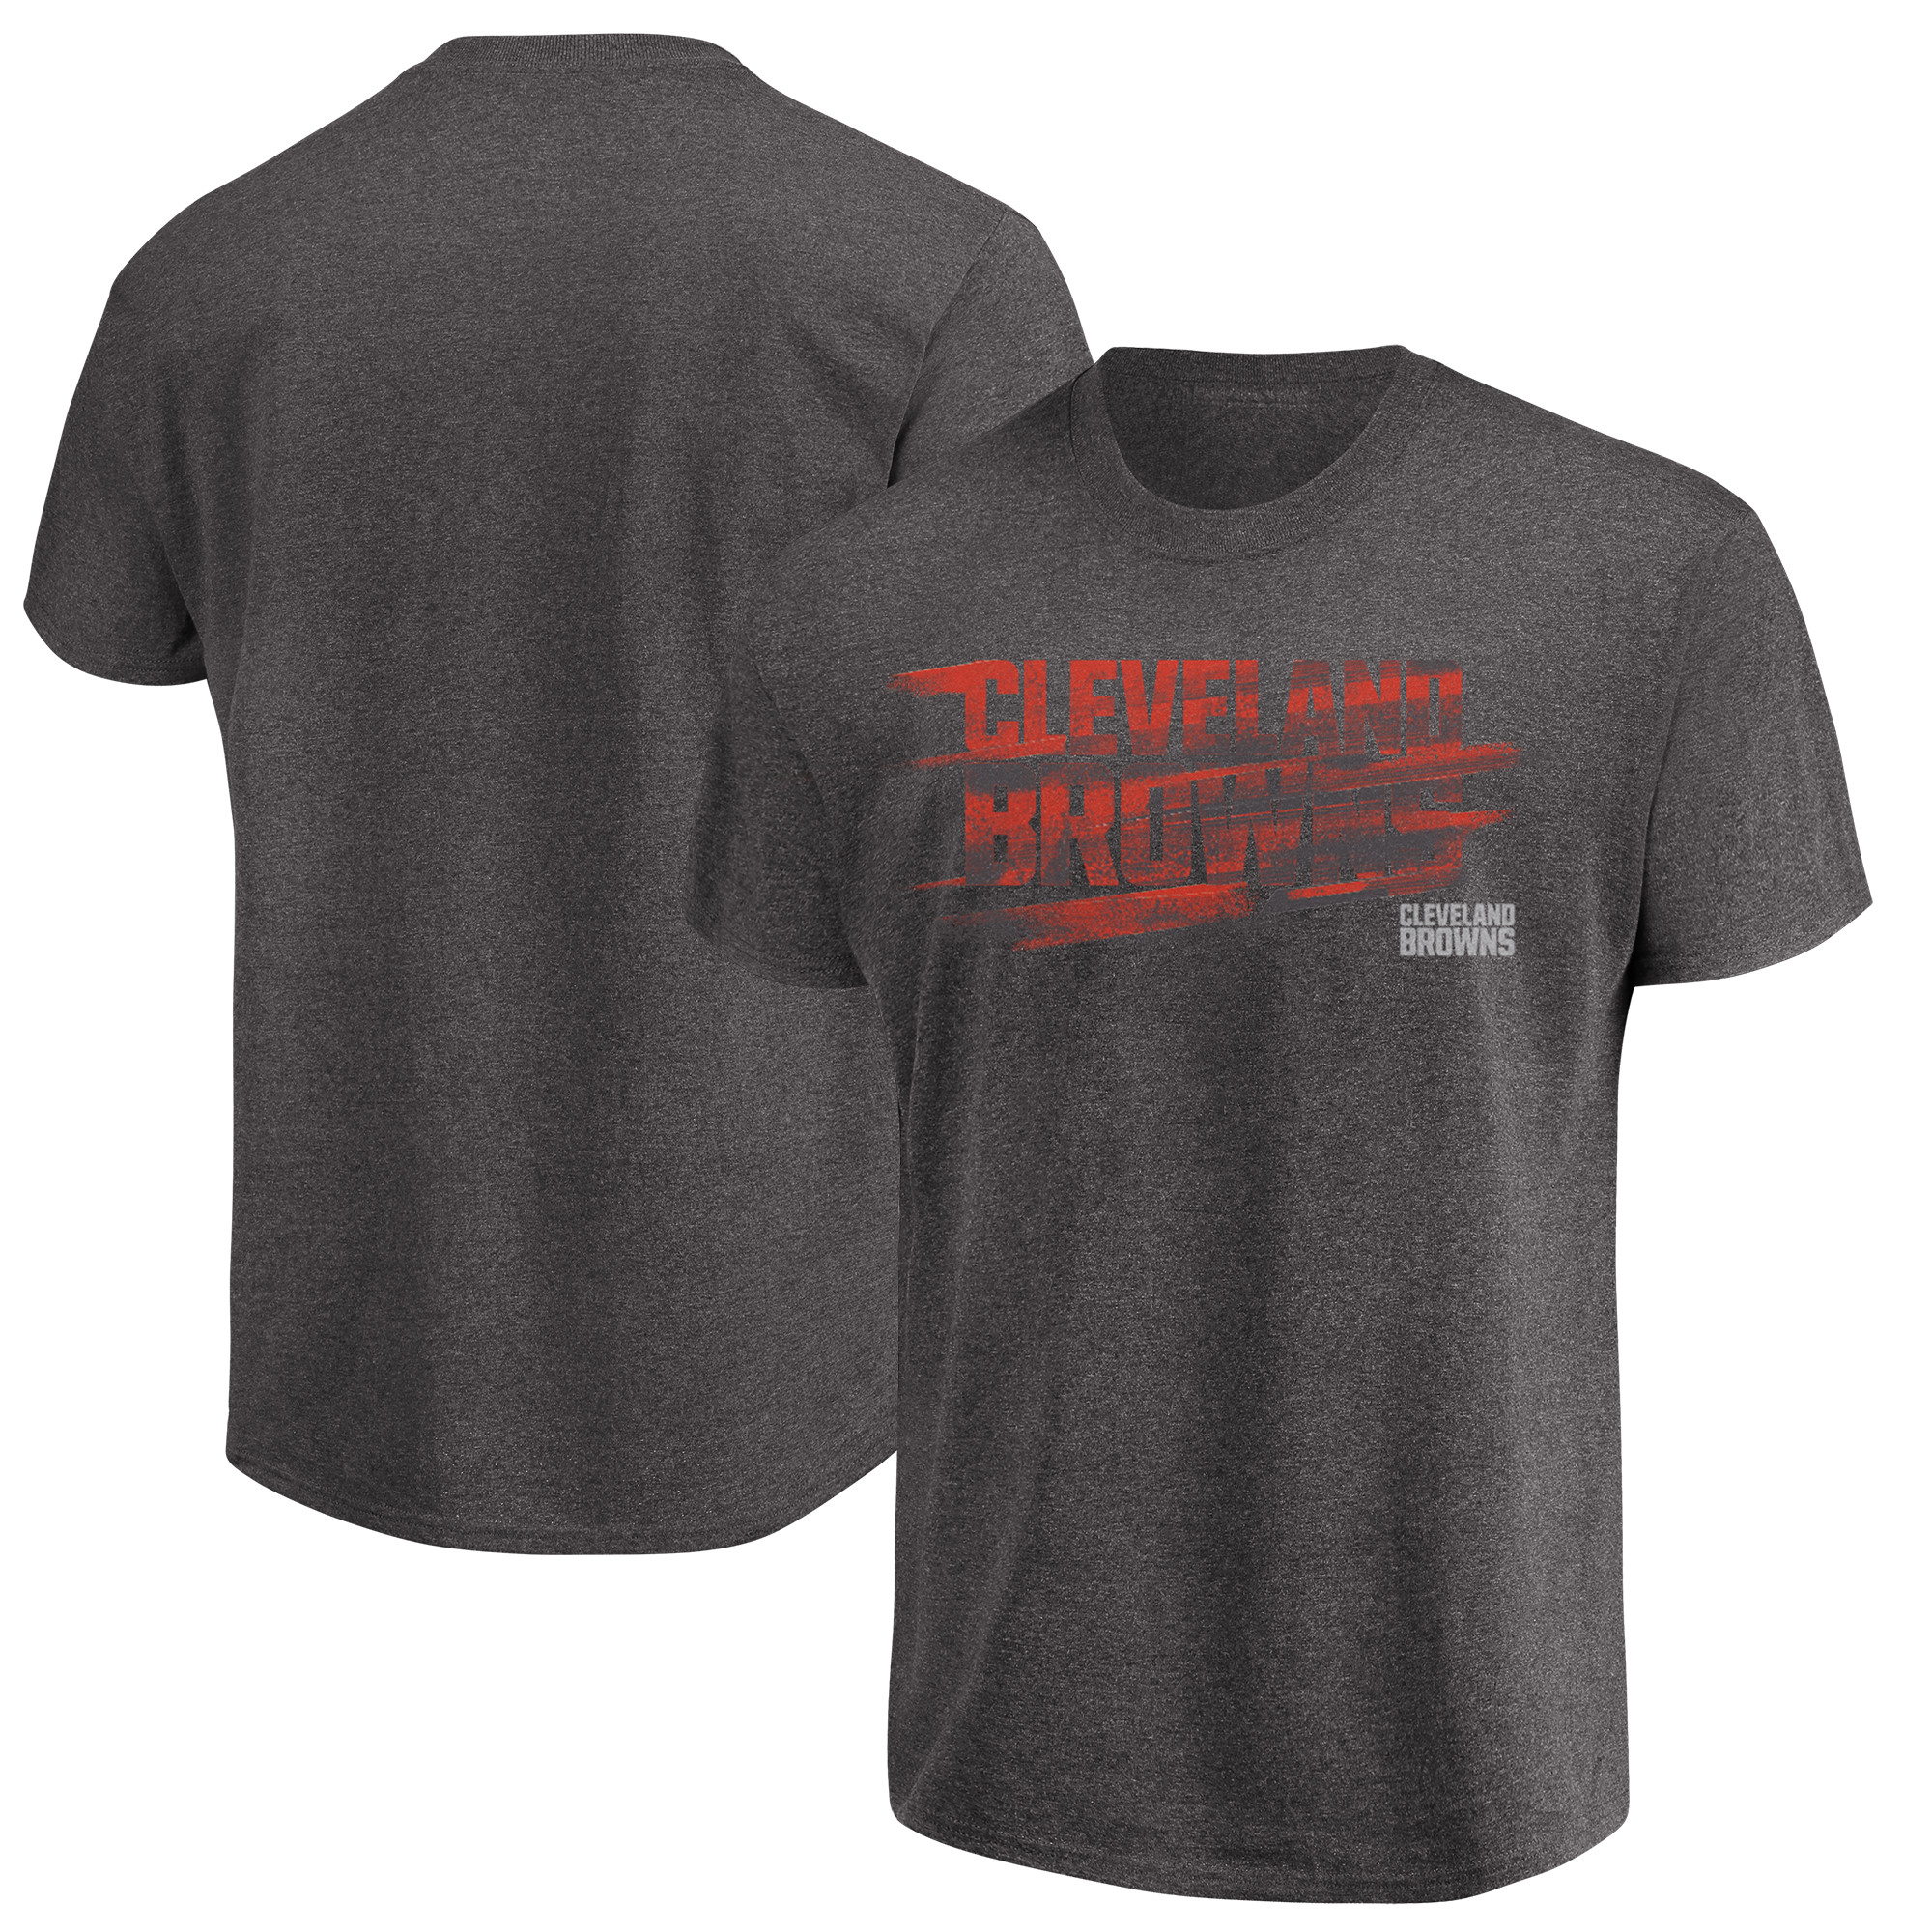 Cleveland Browns Majestic Fierce Intensity T-Shirt - Heathered Charcoal - L